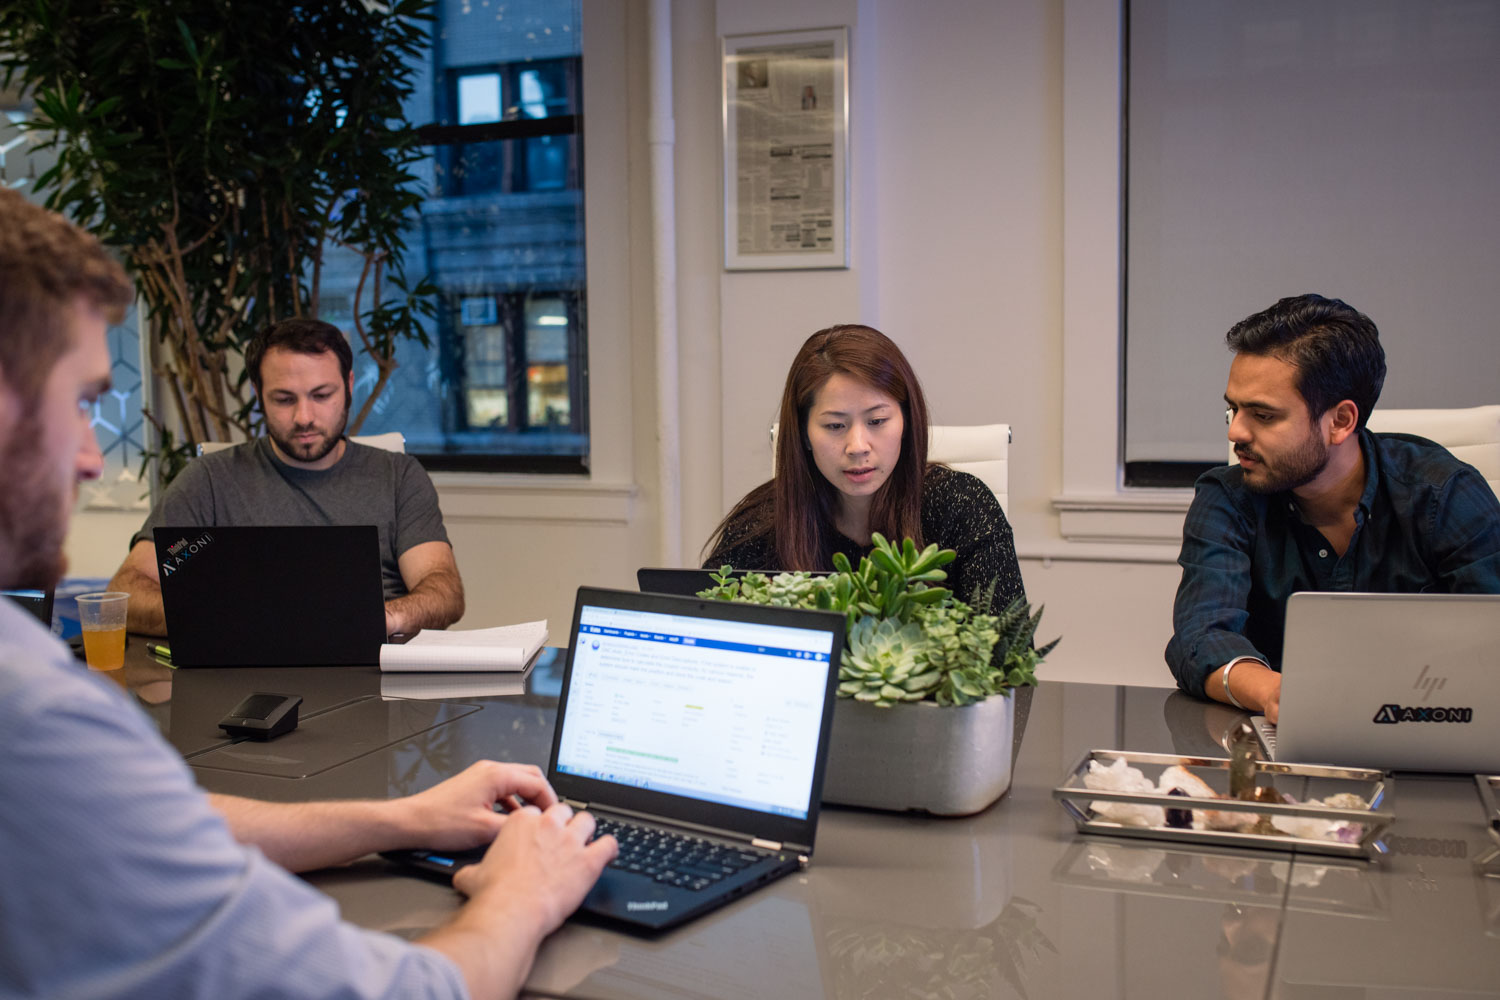 Office Lifestyle - Business & Corporate Lifestyle Photography NYC Startup Tech Team at Computers